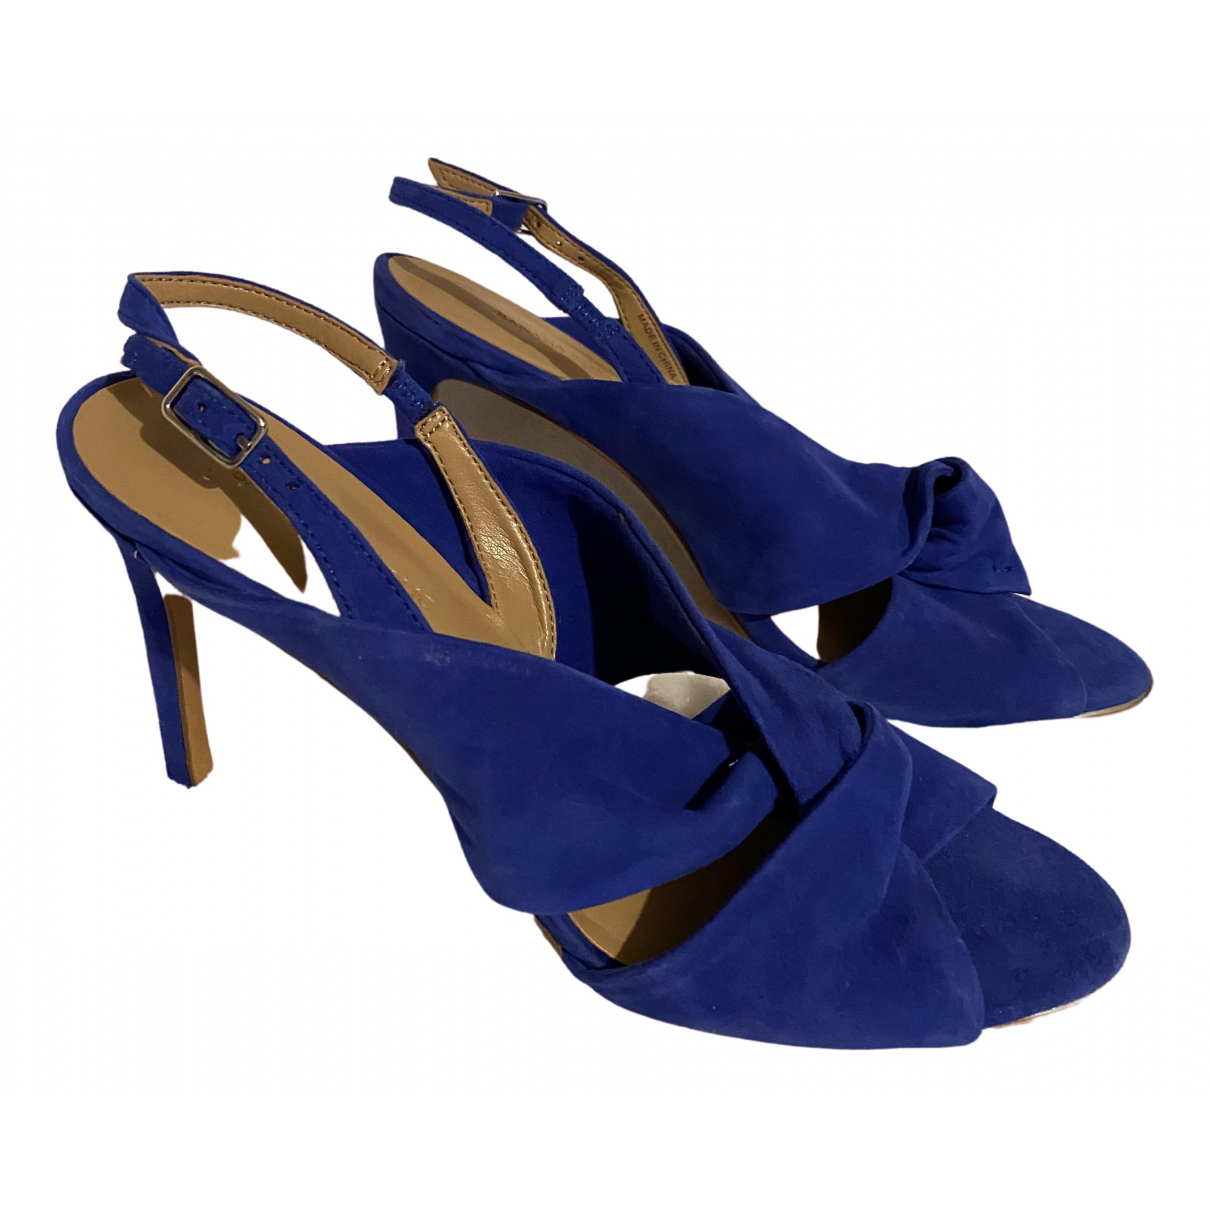 Banana Republic \N Blue Suede Heels for Women 9 US